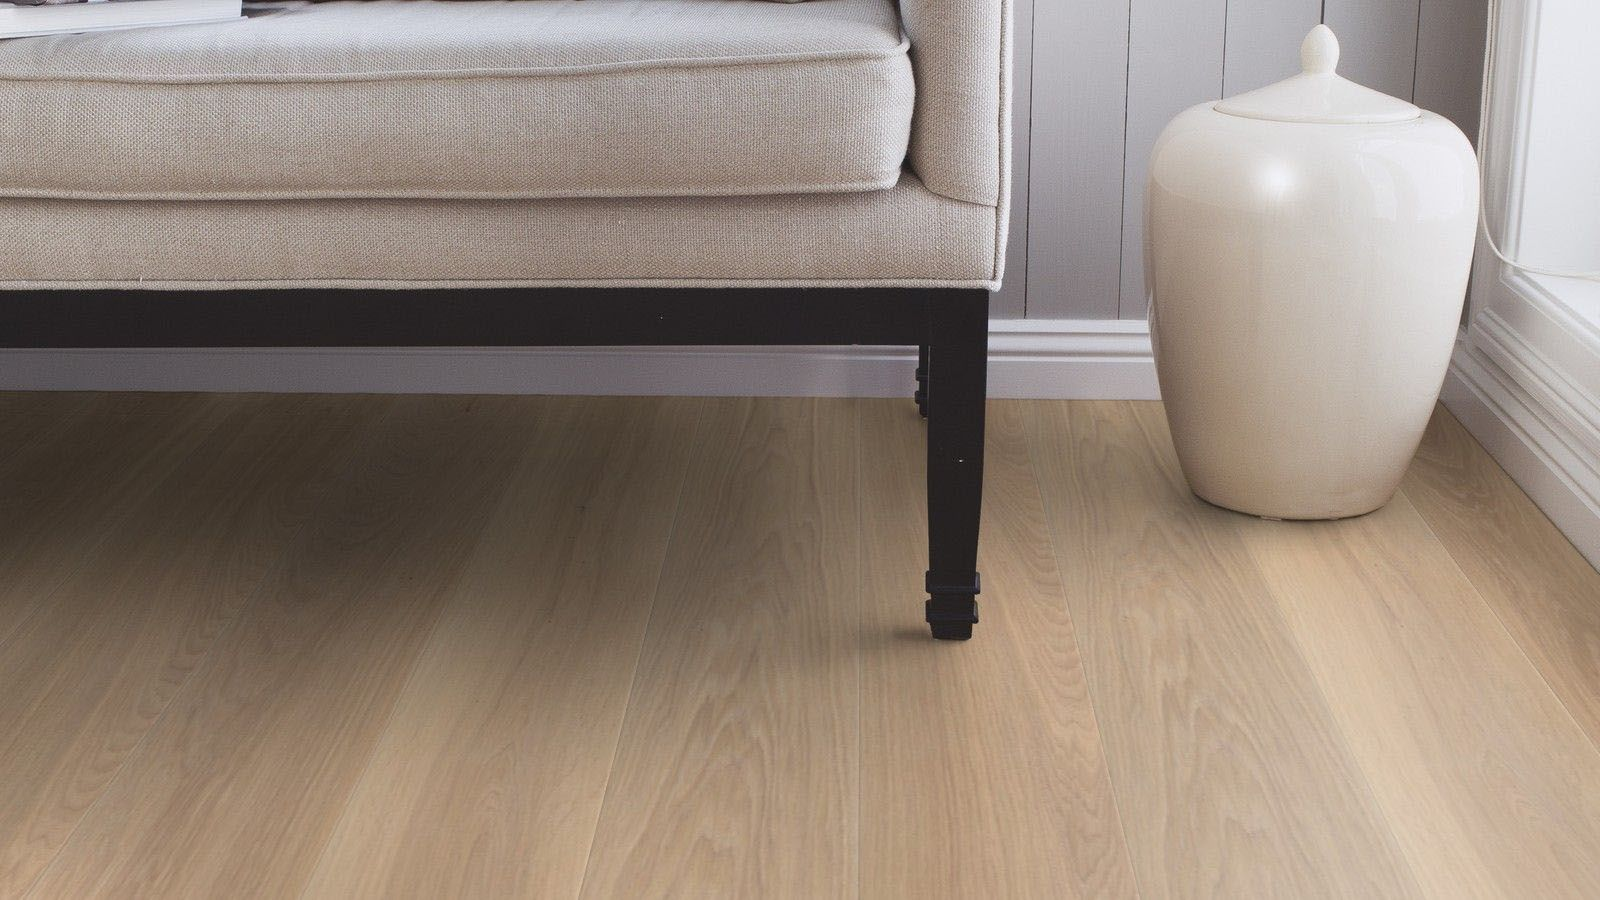 Cool White Oak Flooring Unfinished That Will Blow Your Mind White Oak Floors White Oak Flooring Bedroom White Floors